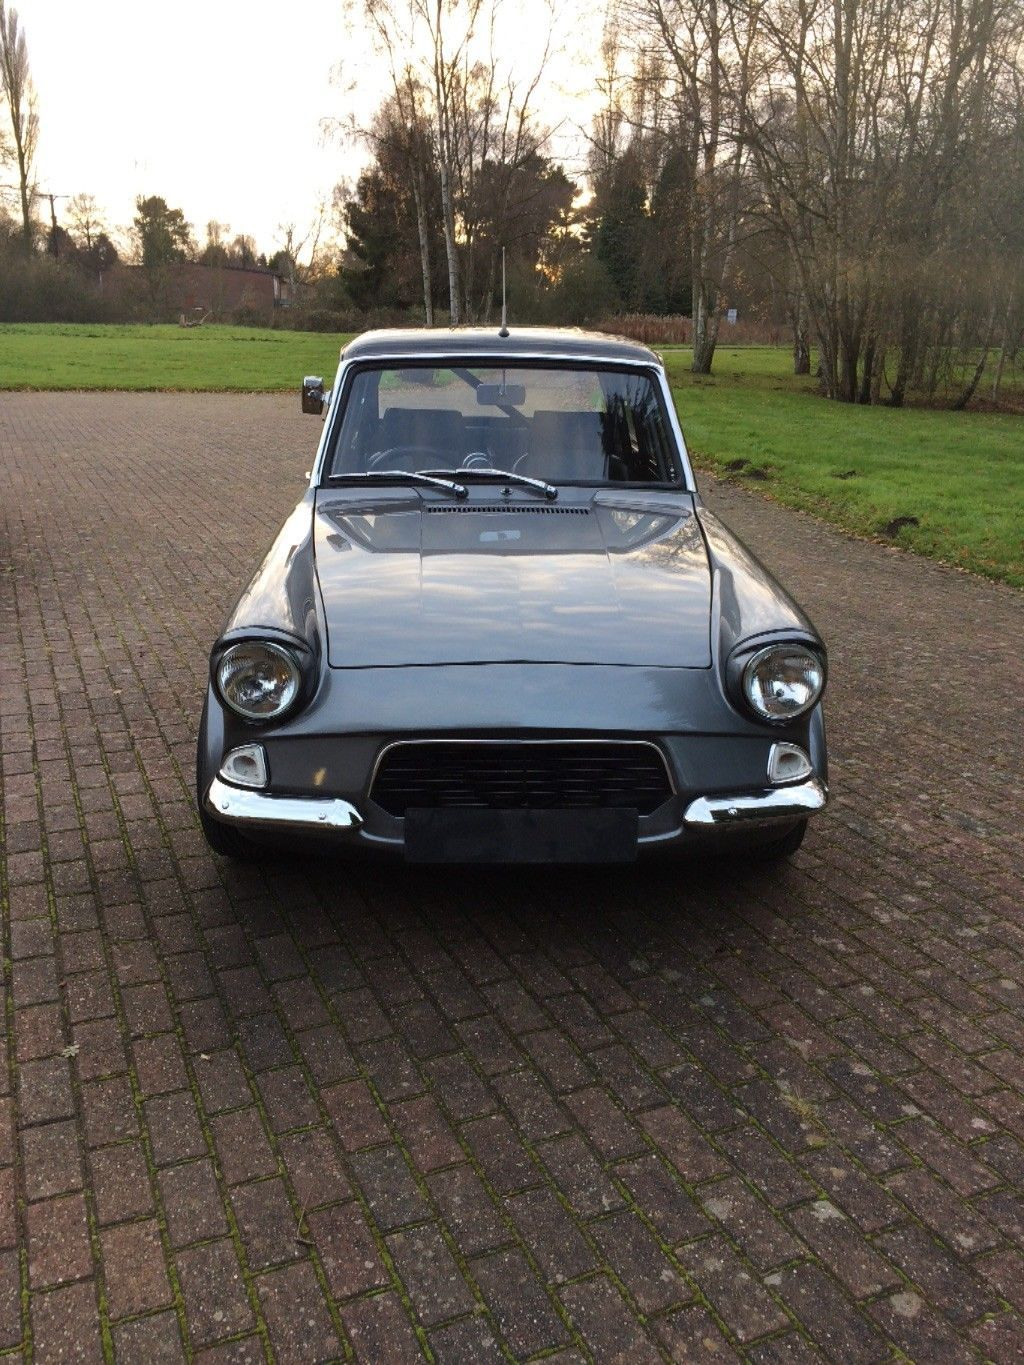 Looking For A Ford Anglia St200 This One Is On Ebay Ford Anglia Ford Ebay